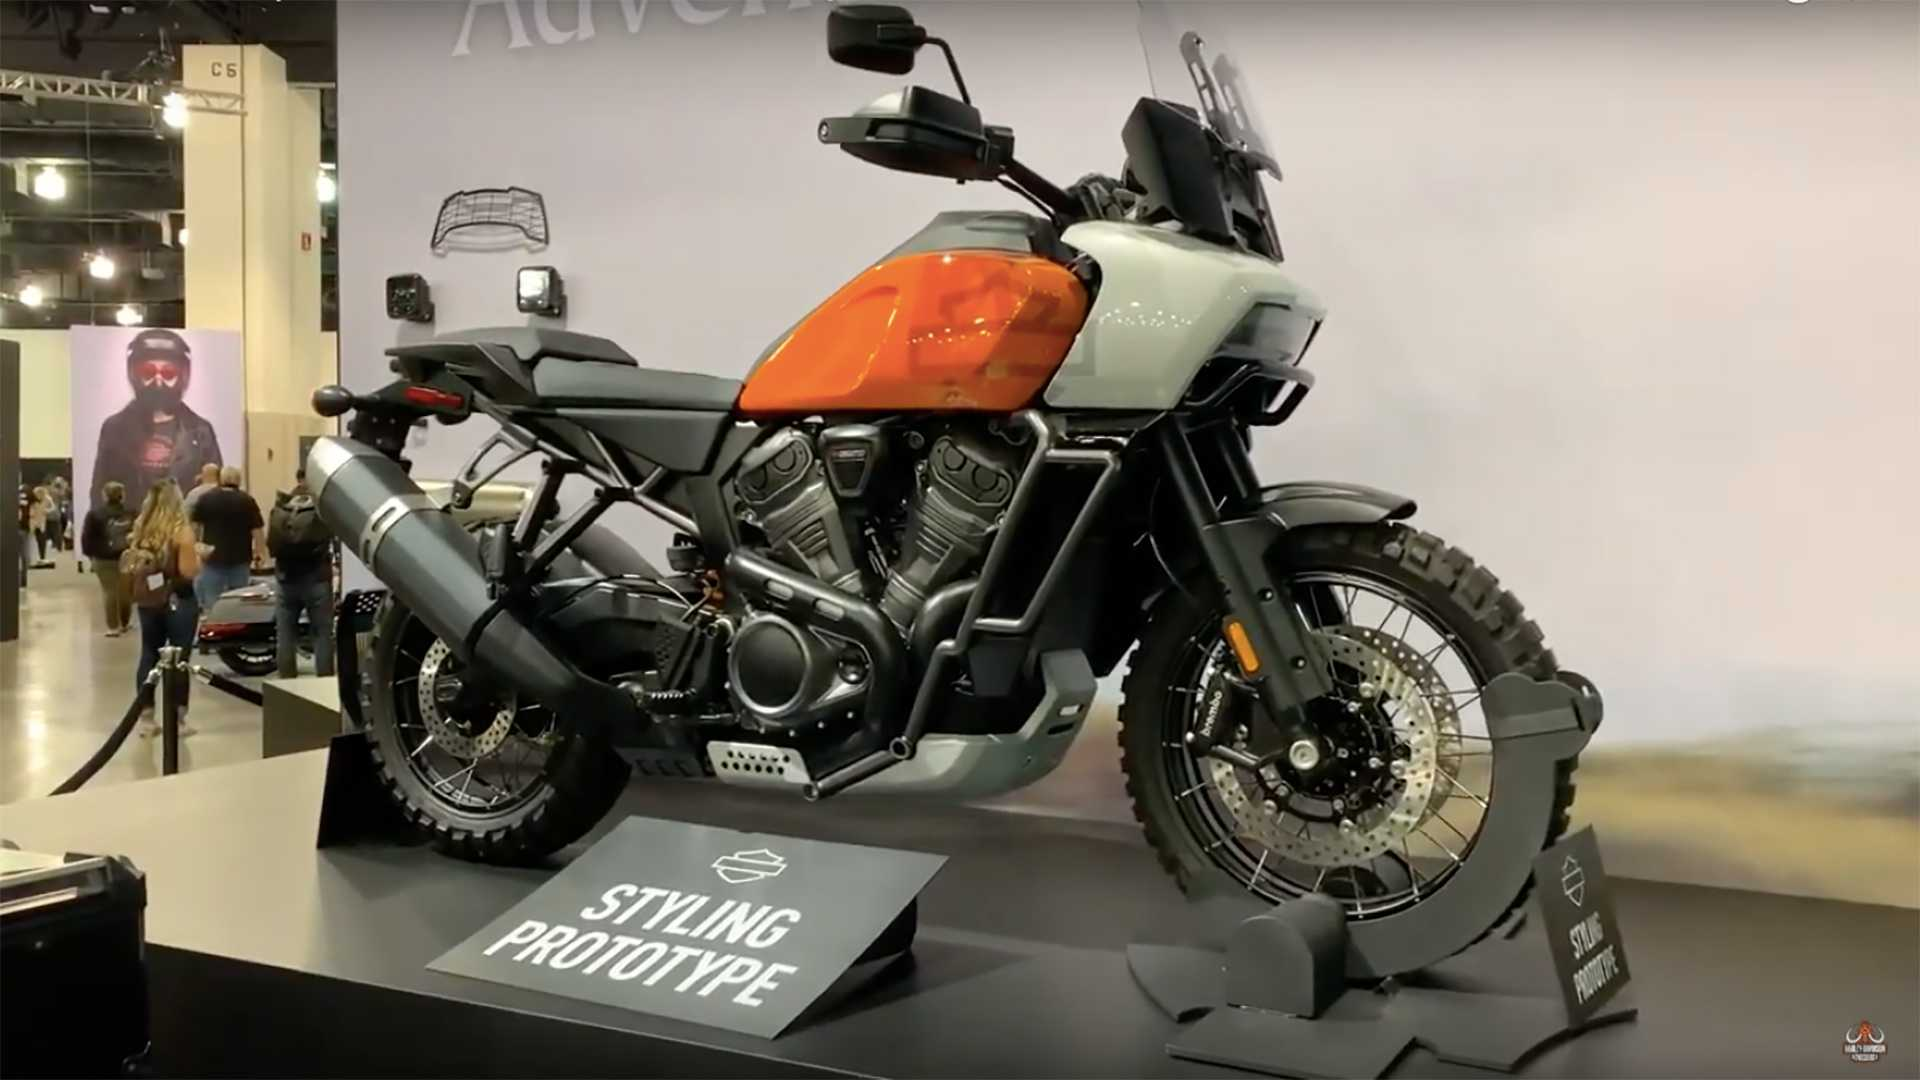 The Harley Pan America Prototype Makes A Special Appearance